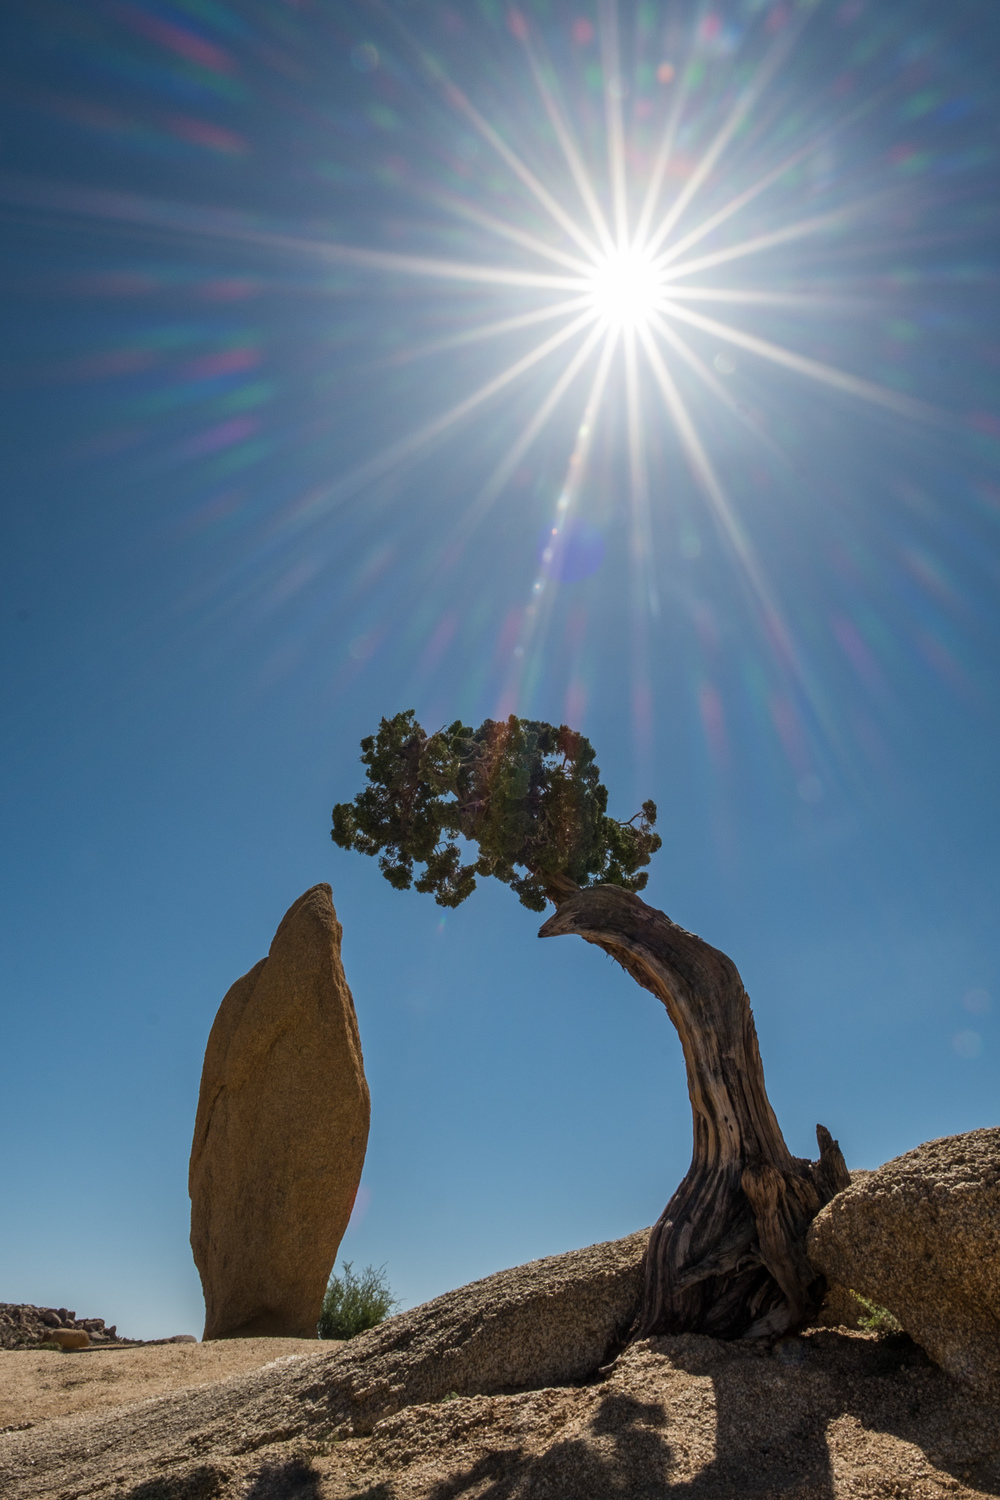 This bonsai tree and rock formation was just above our campground.